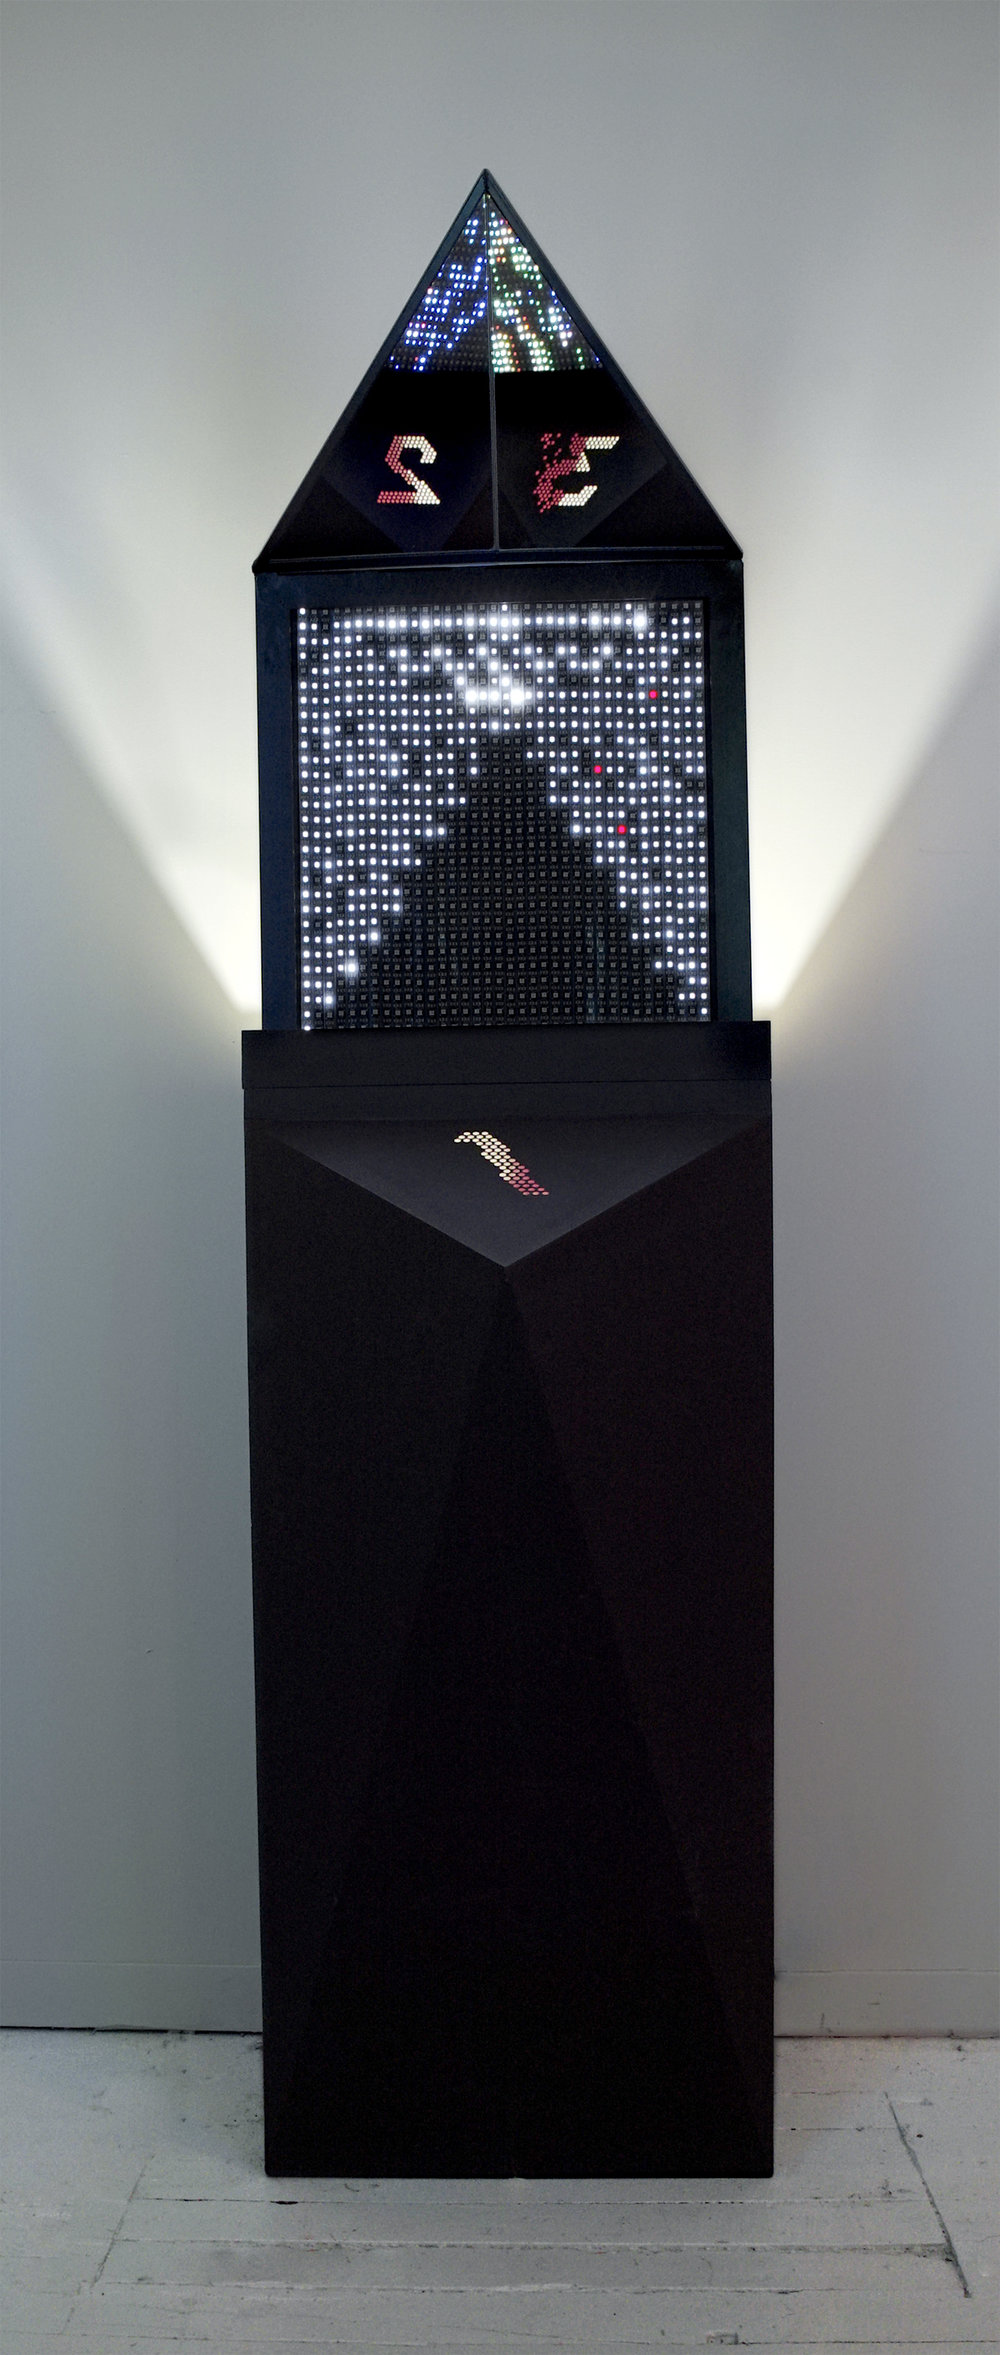 Pillar 01 stands at 6ft tall, while the LED panel is centred at 5.5ft to meet the average person's eye level.